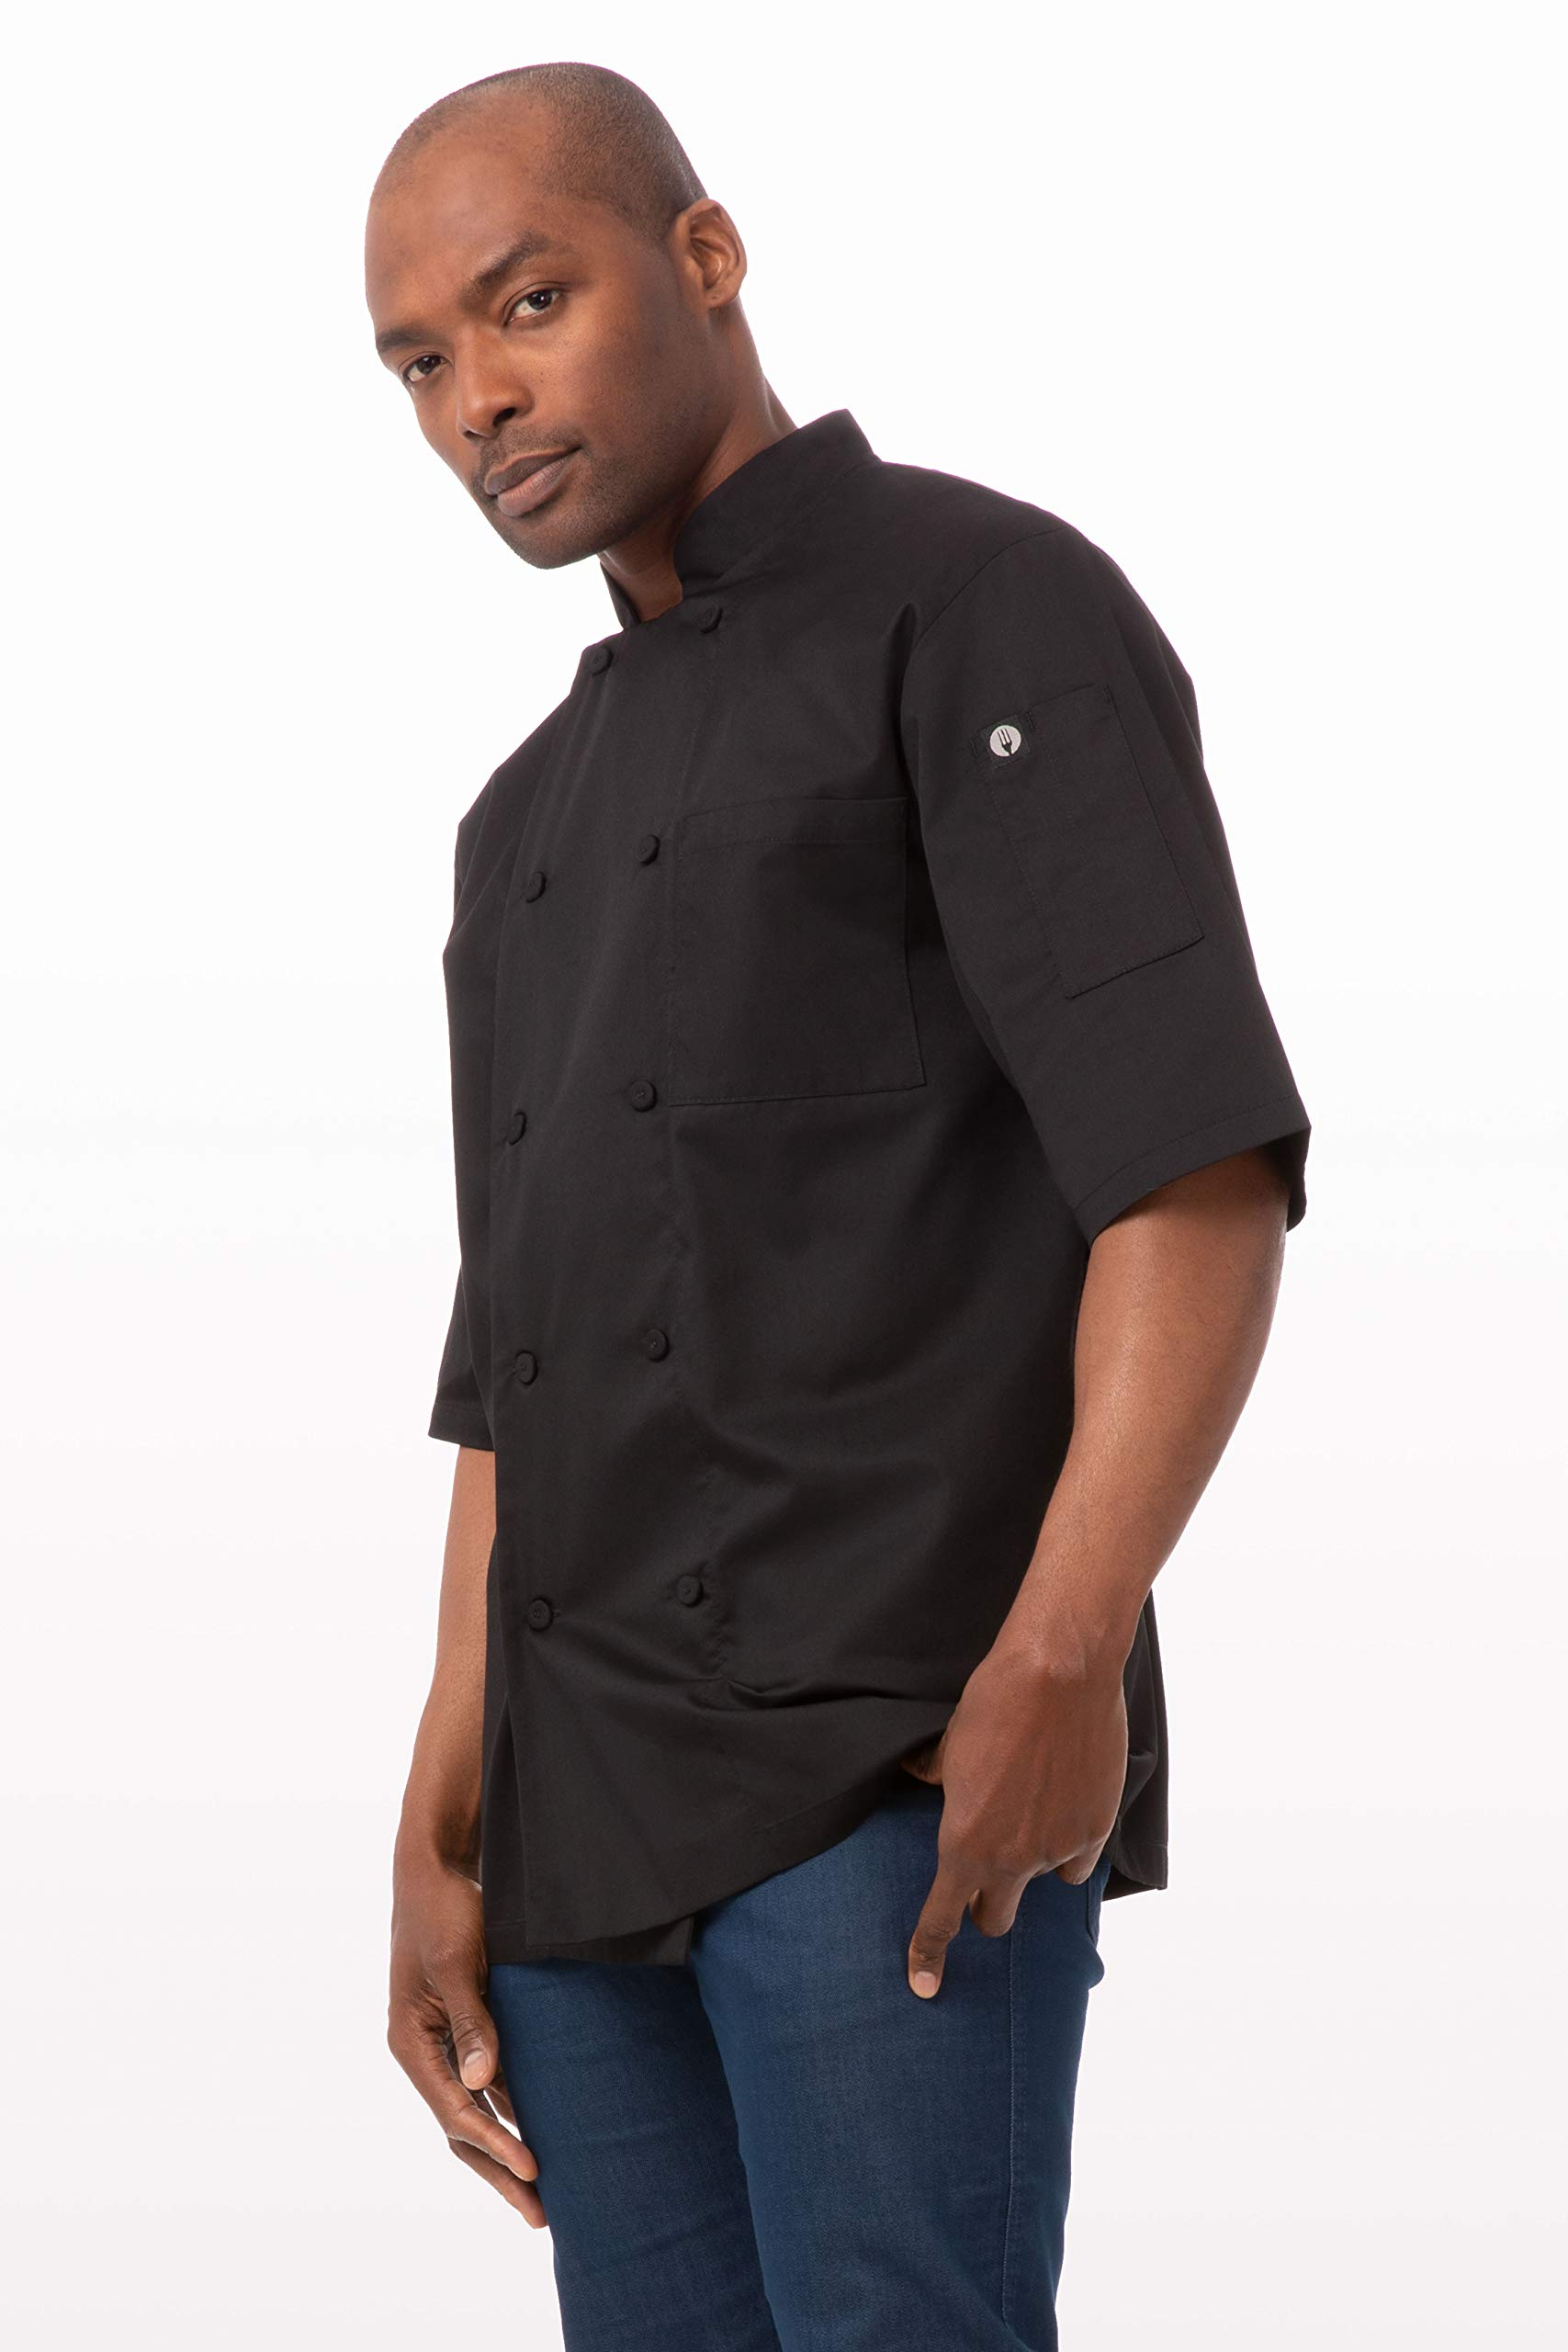 Chef Works Men's Montreal Cool Vent Chef Coat, Black, Large by Chef Works